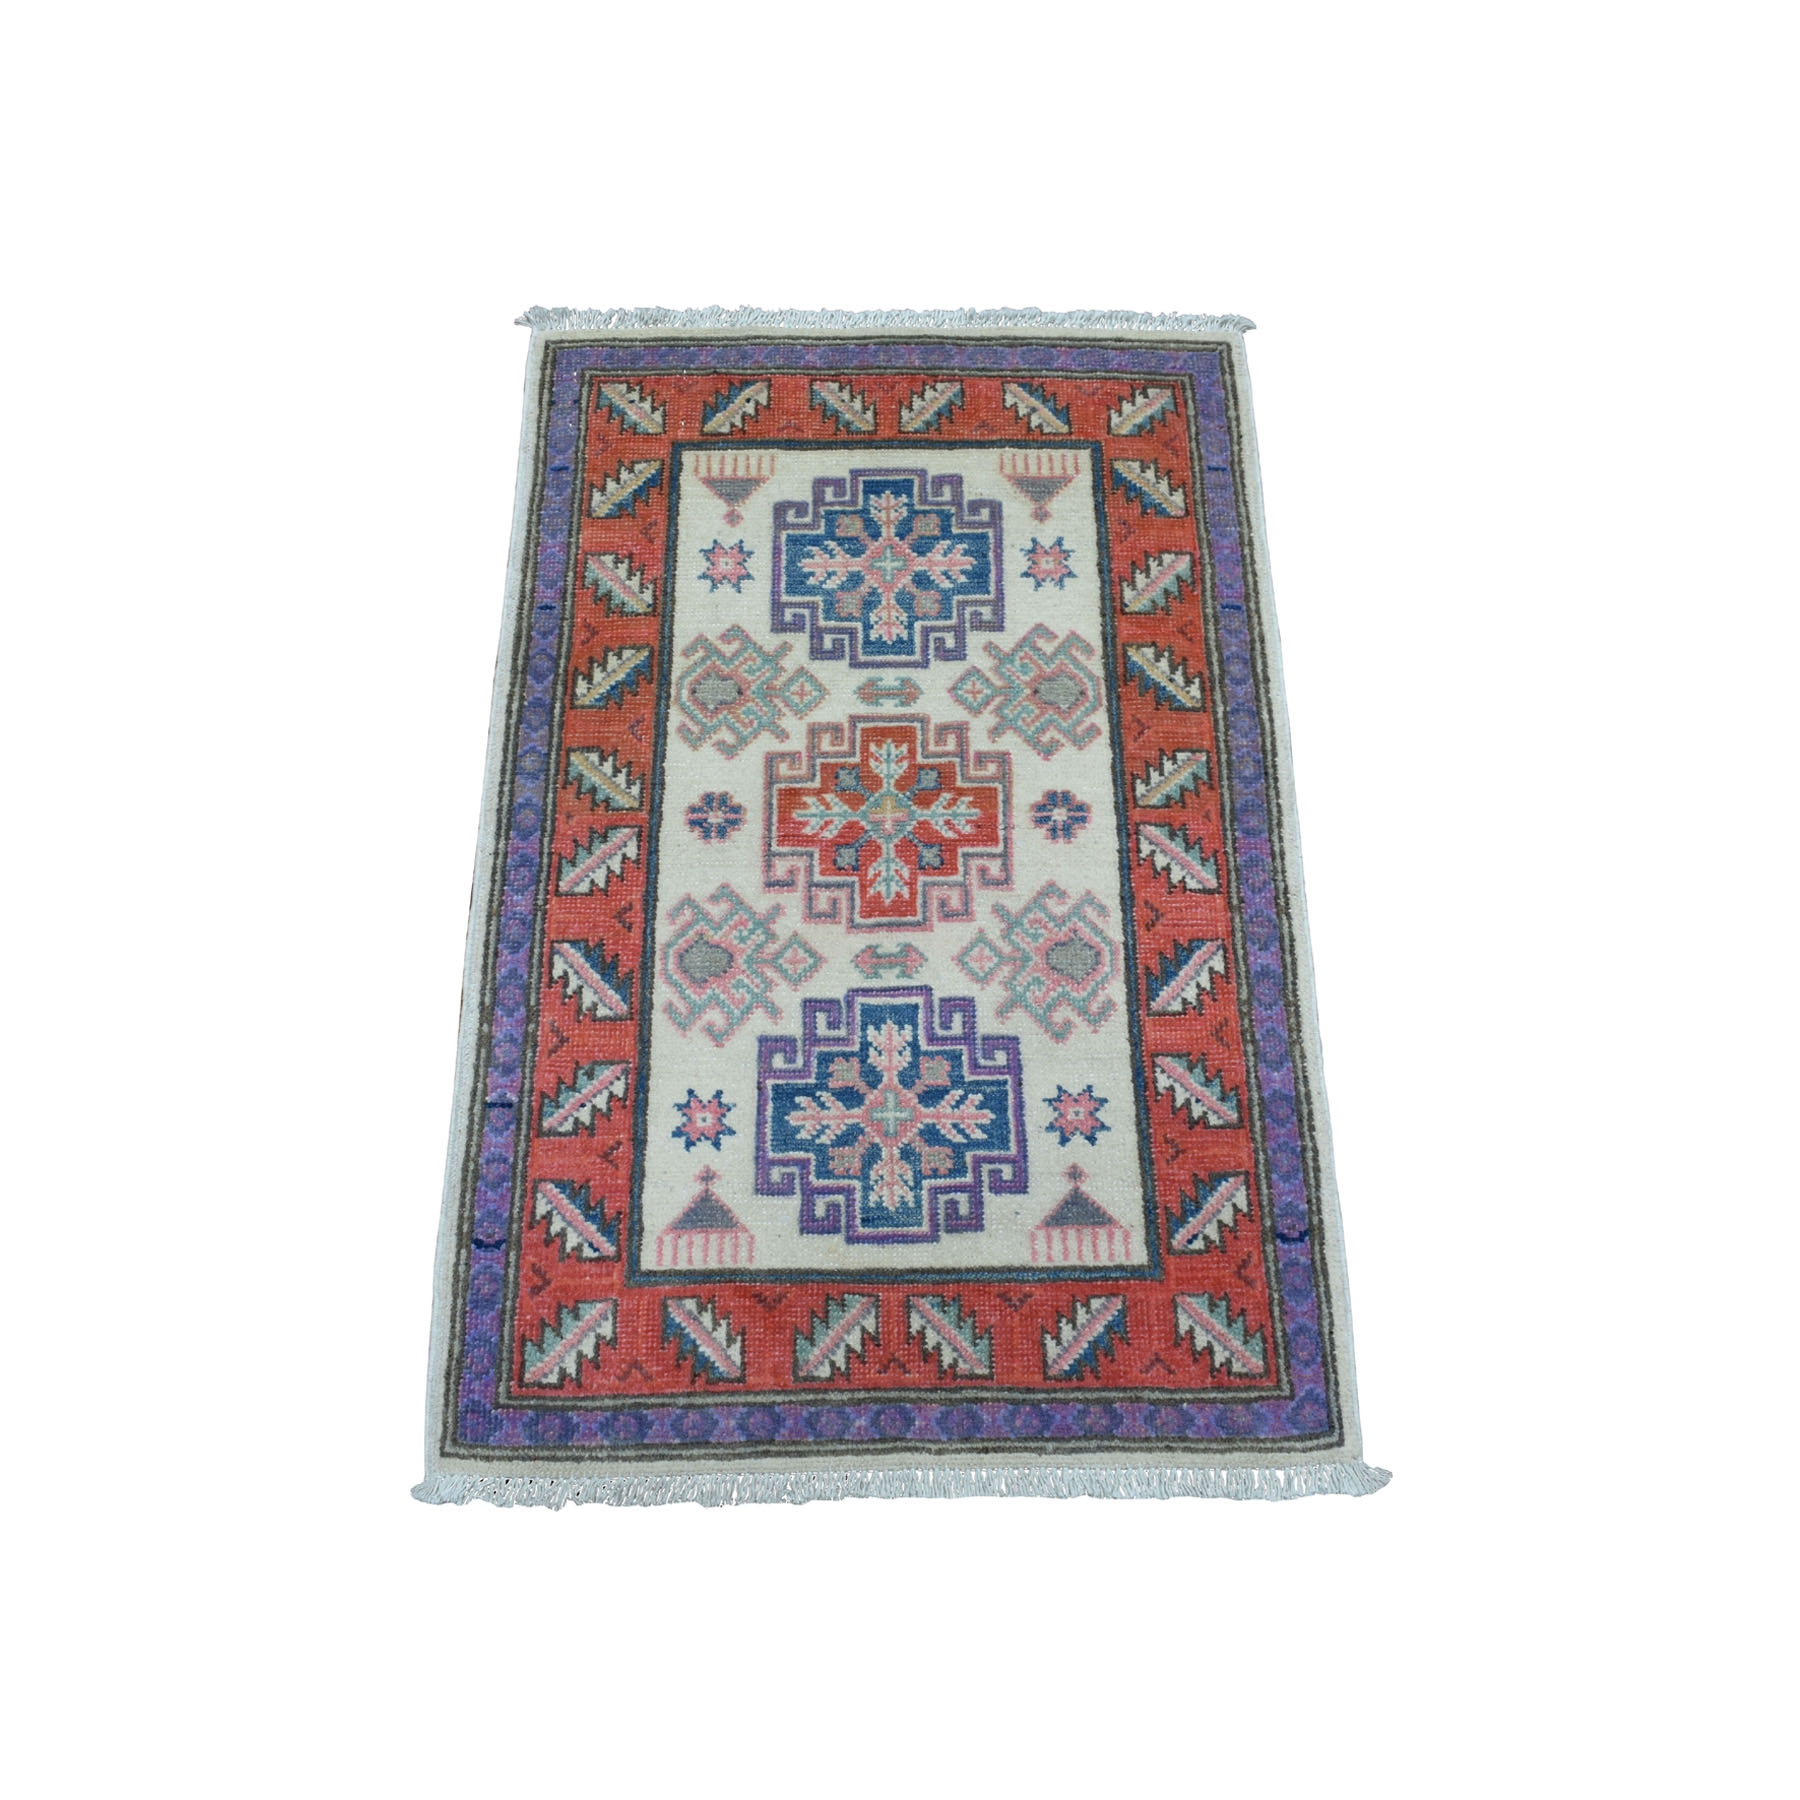 2'X3' Colorful Ivory Fusion Kazak Pure Wool Hand Knotted Oriental Rug moaeda68